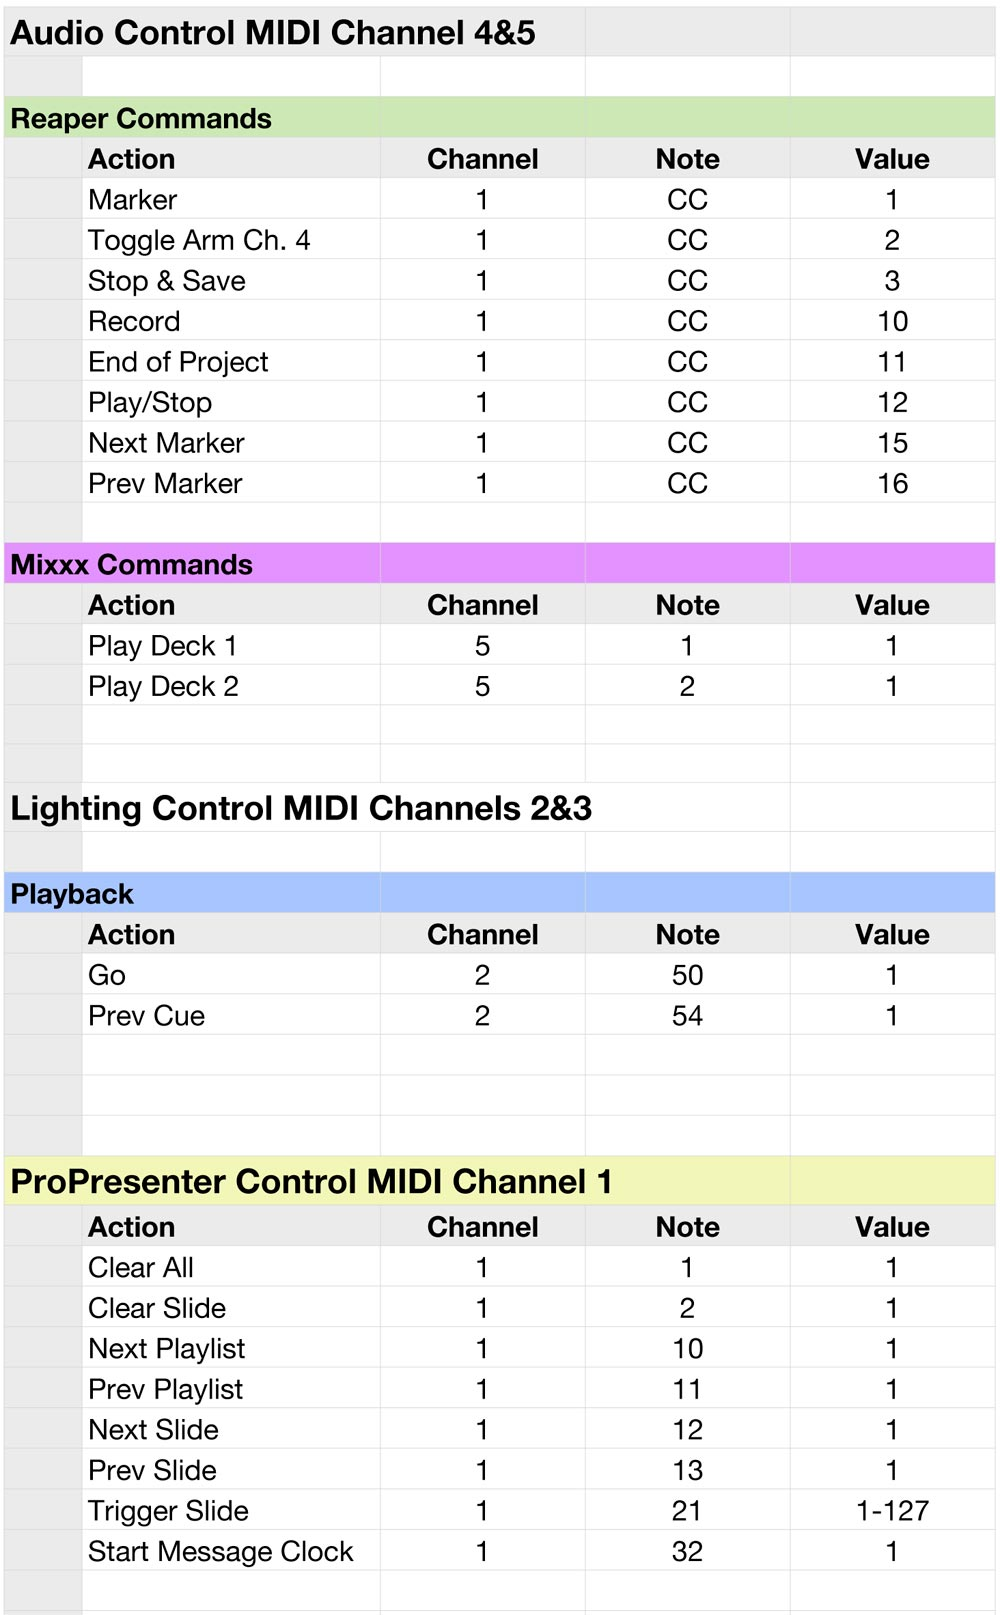 This is my current master   MIDI list. It's a work in progress, but these are the commands we use regularly.